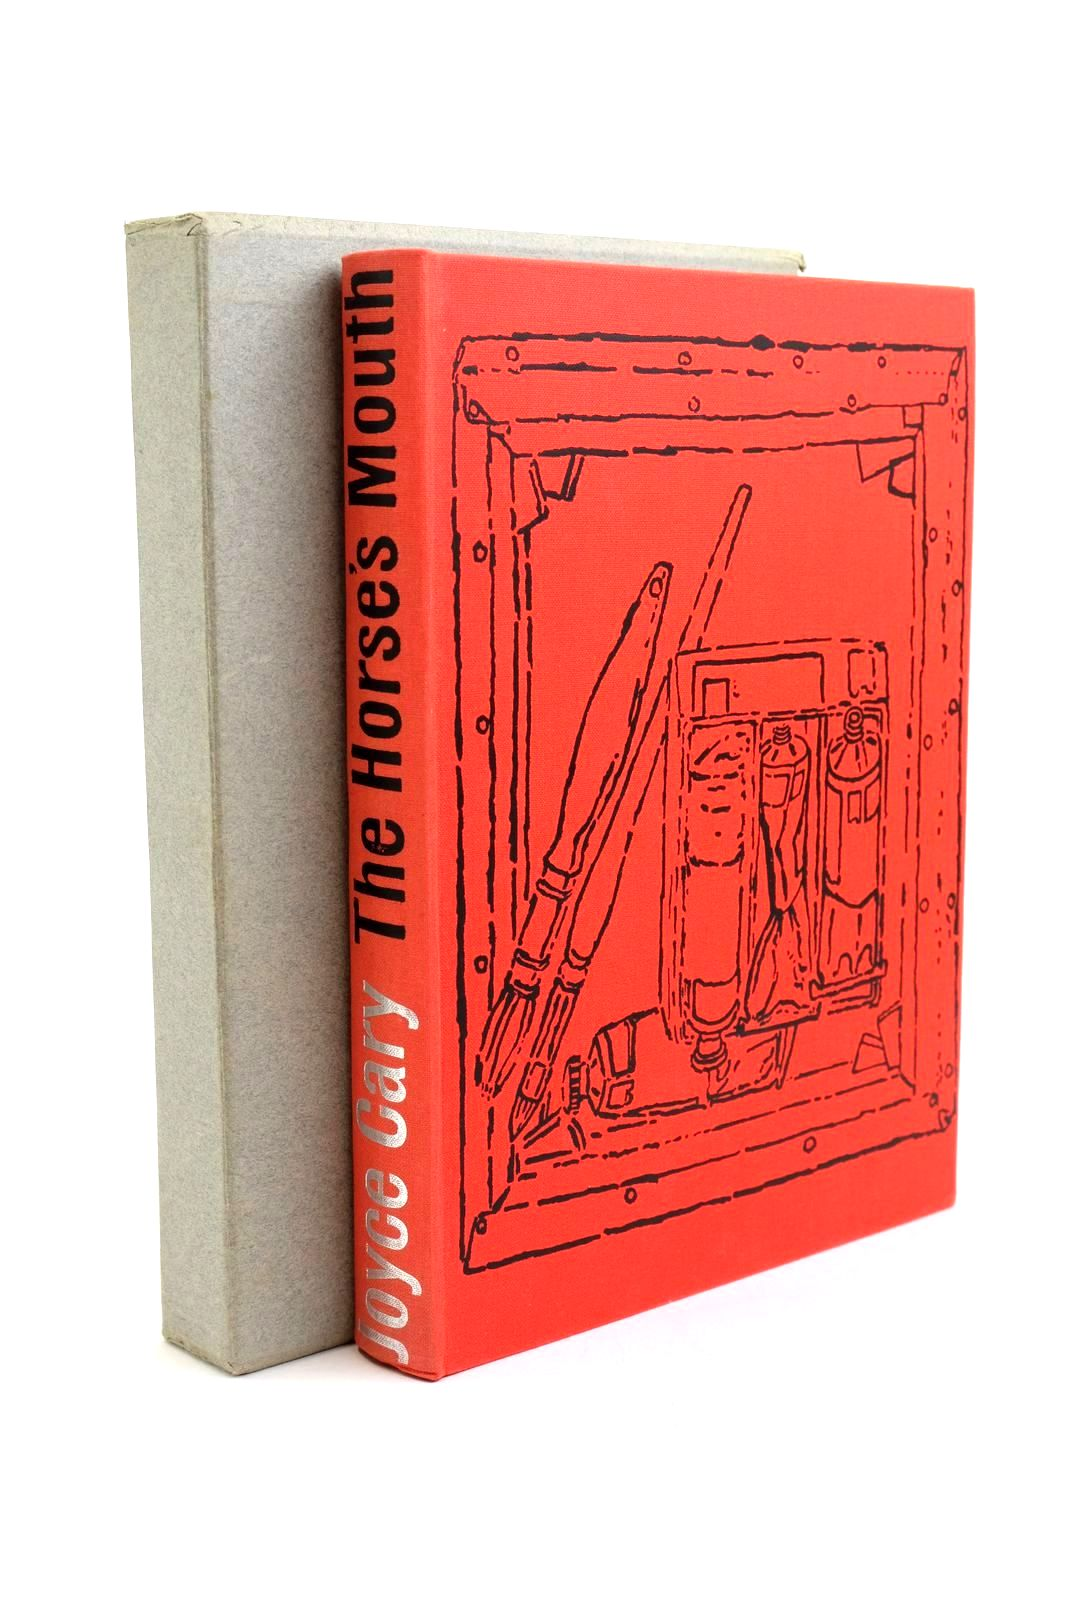 Photo of THE HORSE'S MOUTH written by Cary, Joyce illustrated by Bratby, John published by Folio Society (STOCK CODE: 1321374)  for sale by Stella & Rose's Books